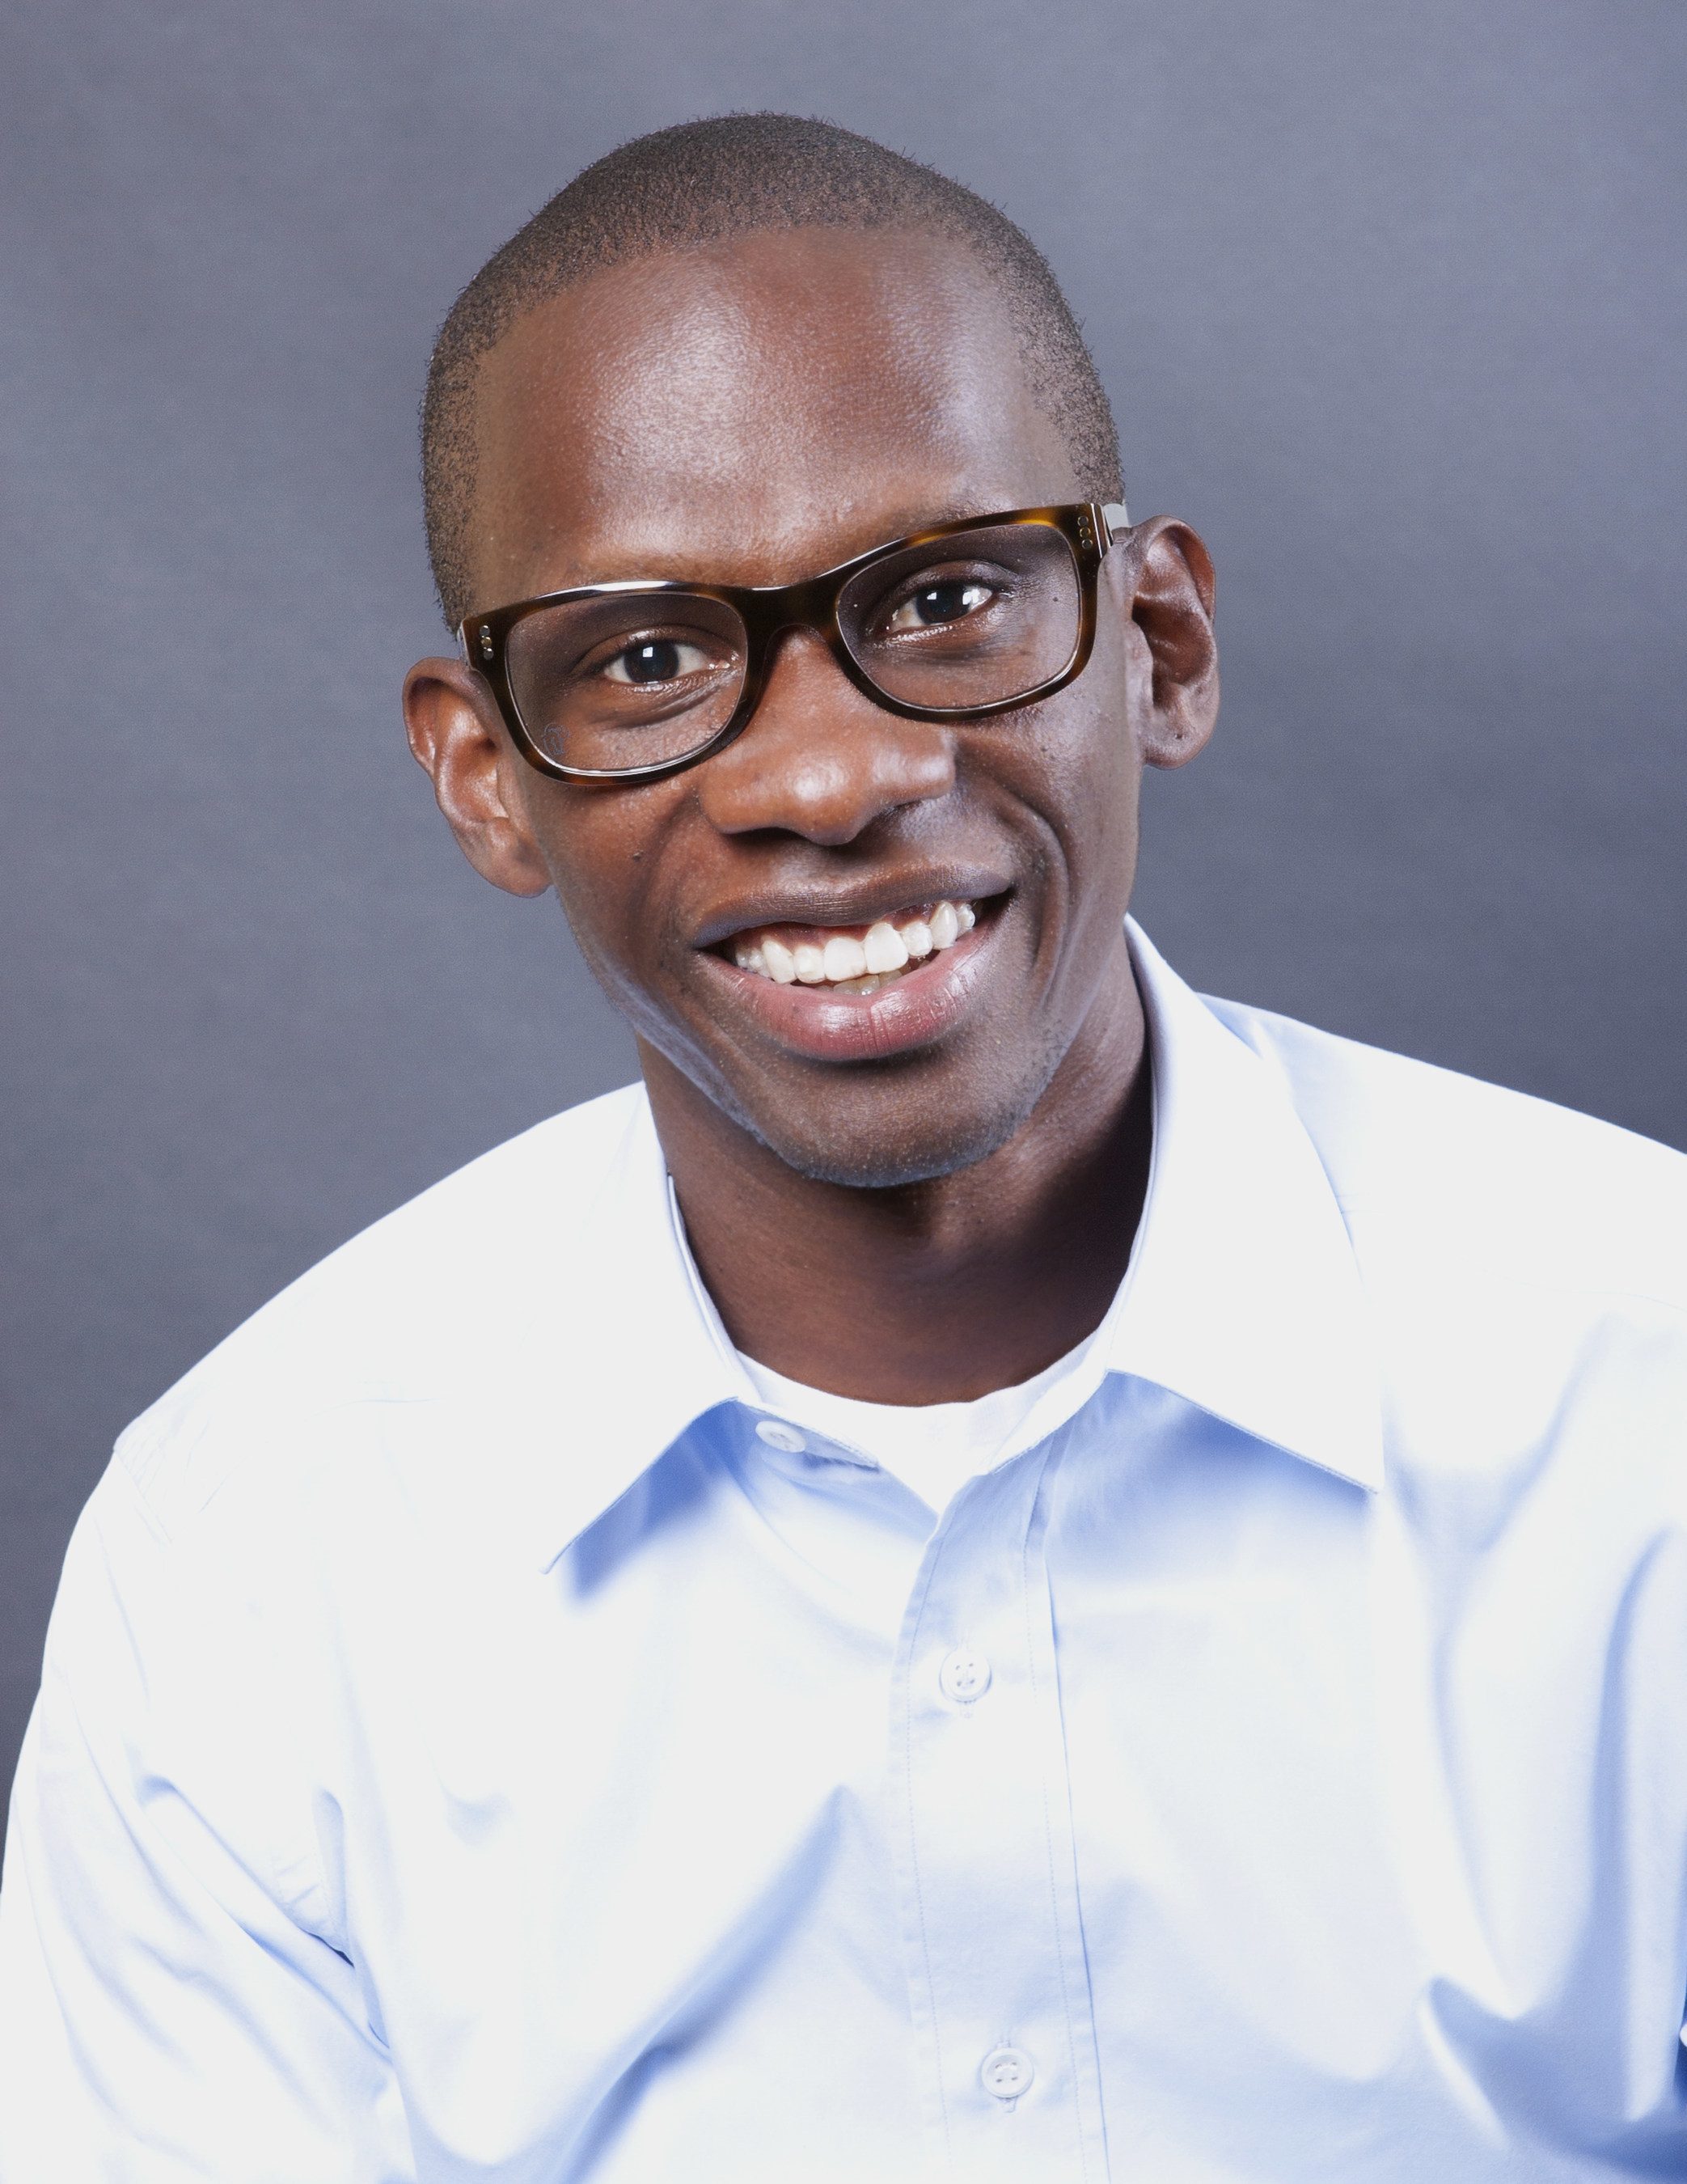 Troy Carter, founder and CEO of Atom Factory, and newly named guest shark on ABC's Shark Tank, will host the Innovation Tank at Boston Children's Hospital's Global Pediatric Innovation Summit and Awards in November.